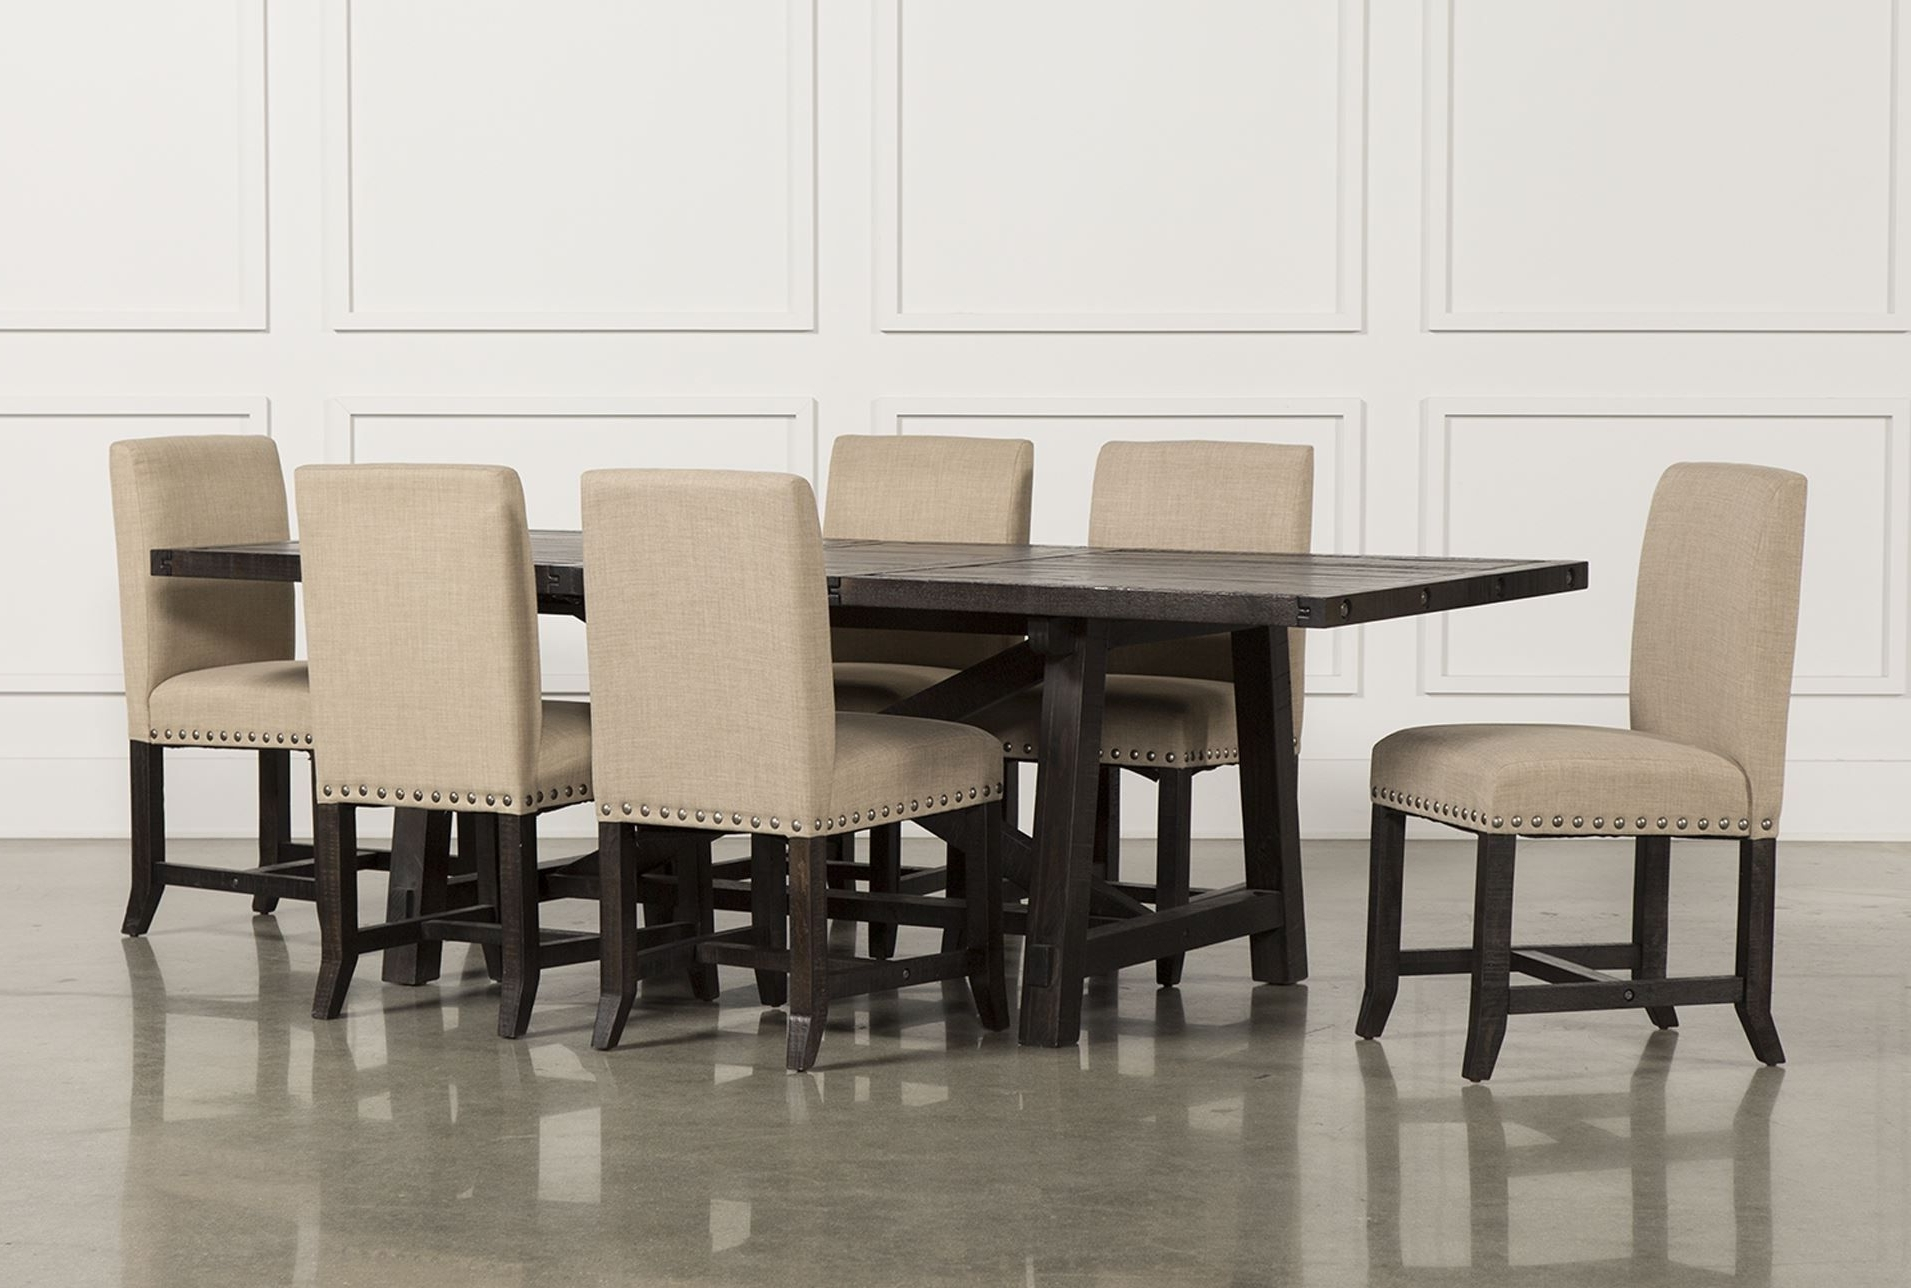 Chandler Fabric Side Chair With Regard To Well Known Candice Ii 7 Piece Extension Rectangular Dining Sets With Uph Side Chairs (View 9 of 25)